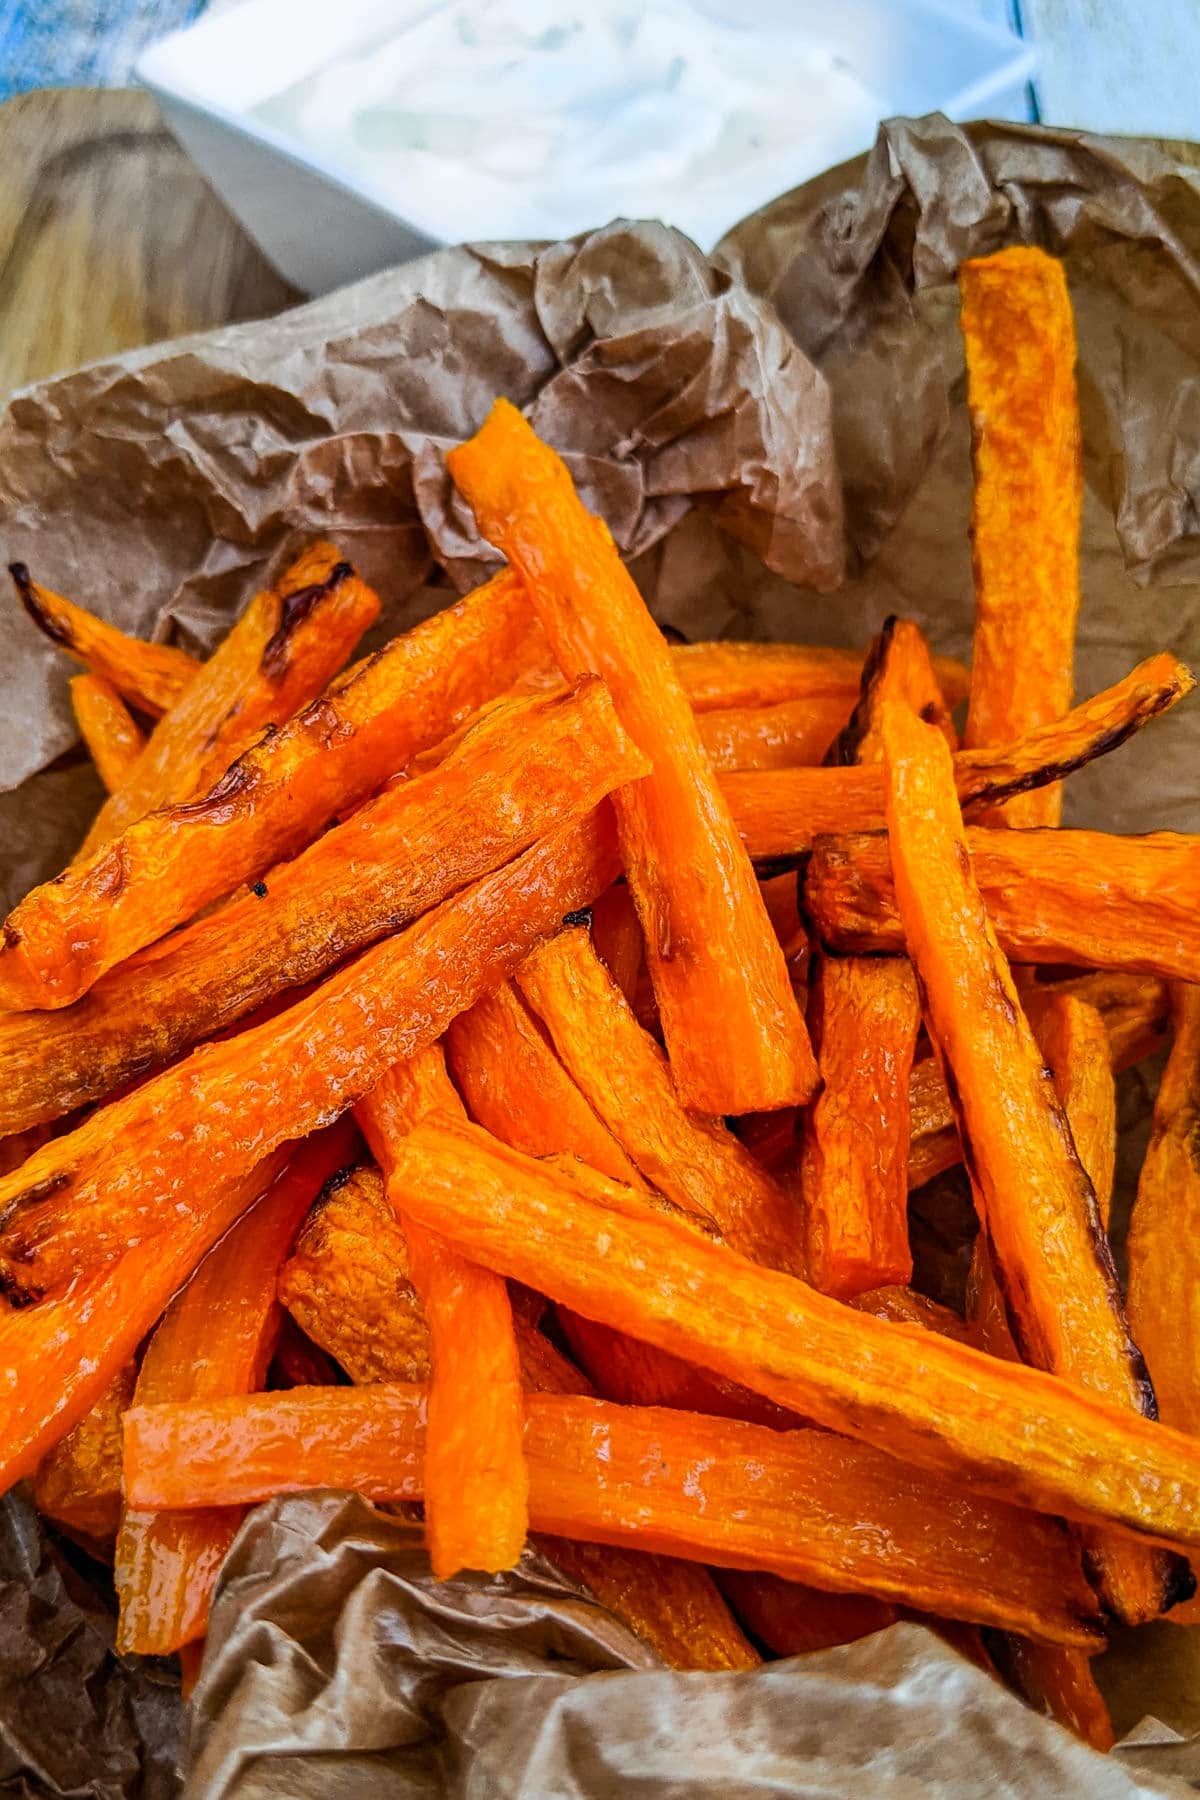 Carrot Fries served with white sauce.